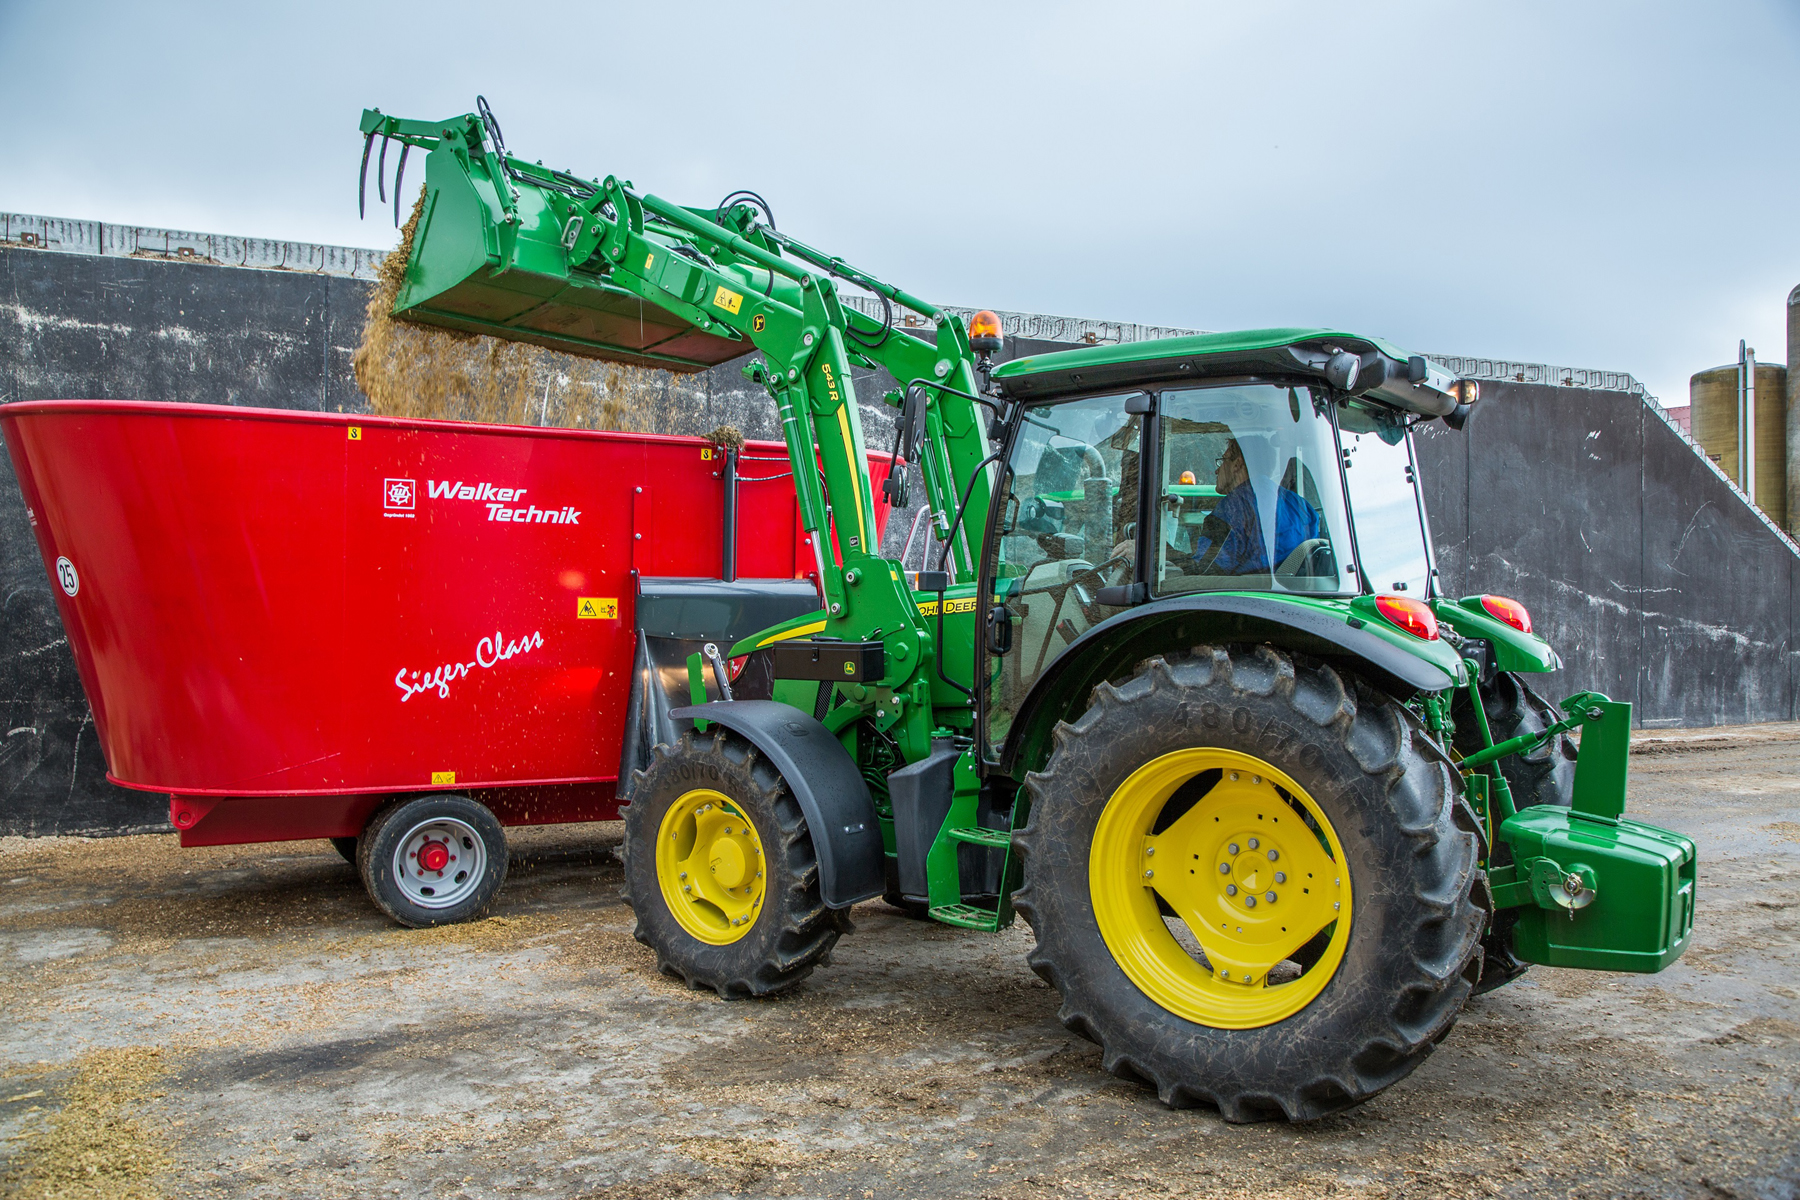 John Deere Tractor Shows : Lamma show didn t make it this year join us on our